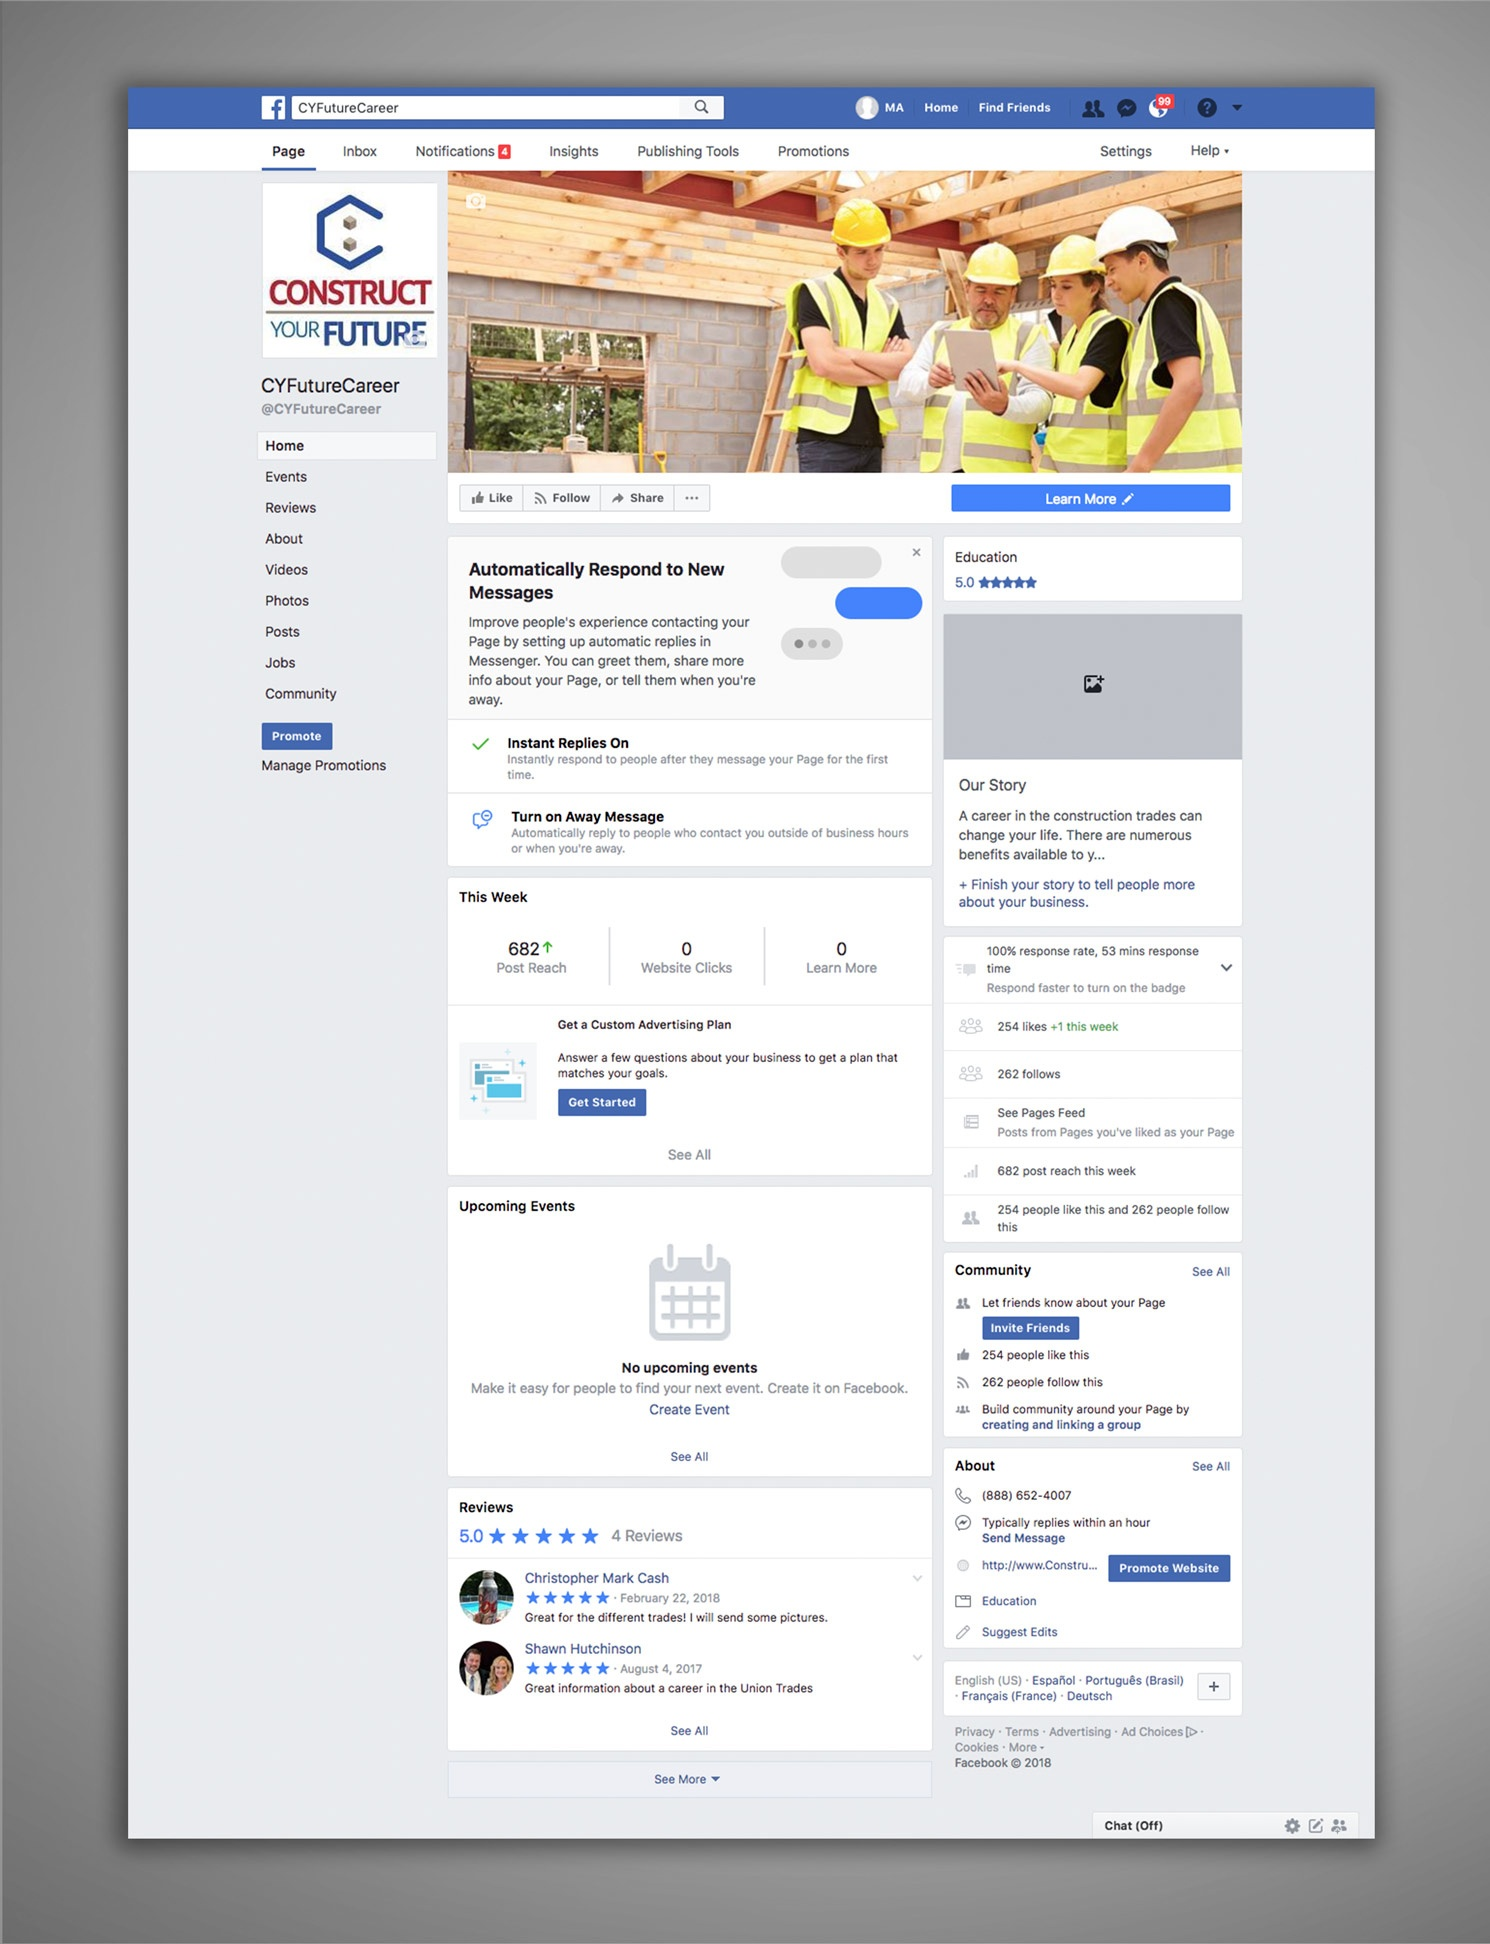 Construct Your Future Facebook Management